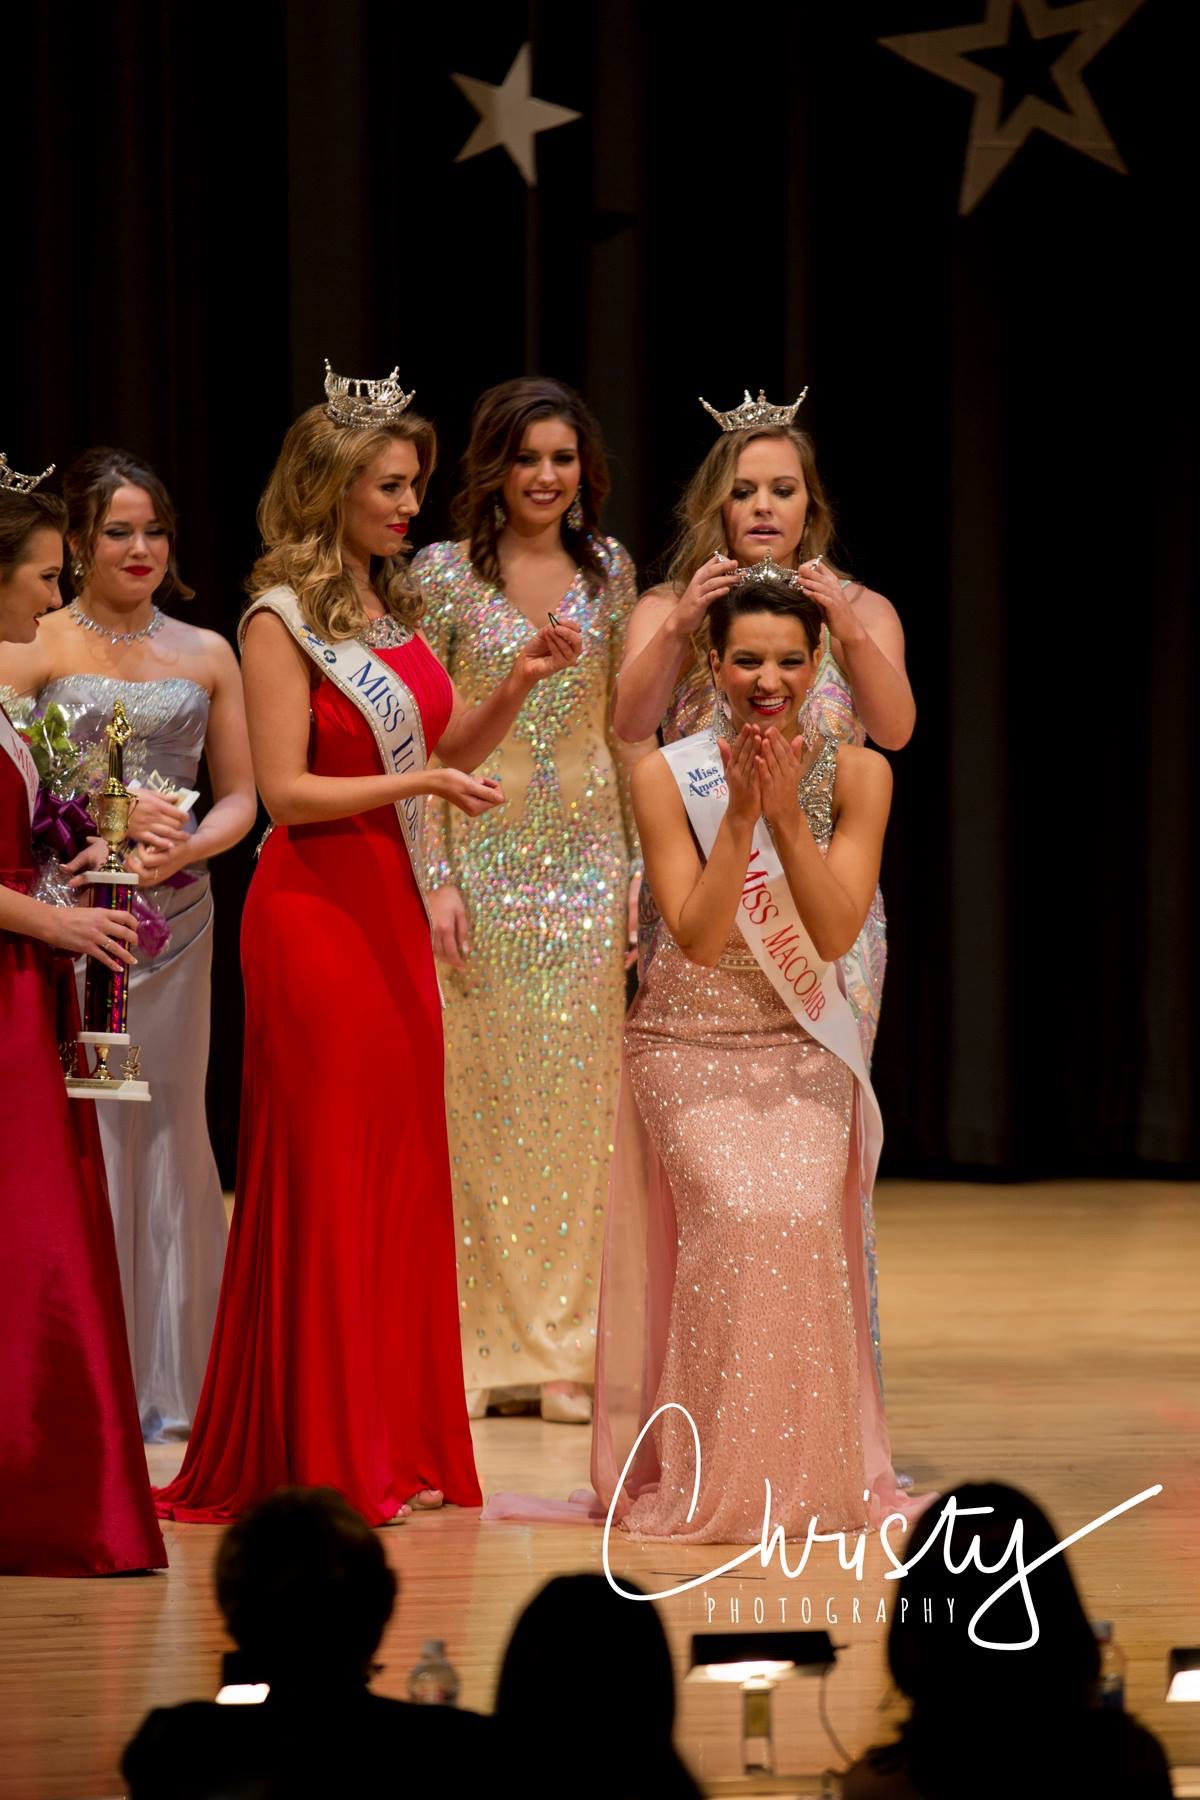 Congratulations to the 2017 Miss Macomb, Angelique Niemann!  Photo Credit: C hristy Photography ,  Christy Bozard Heaton